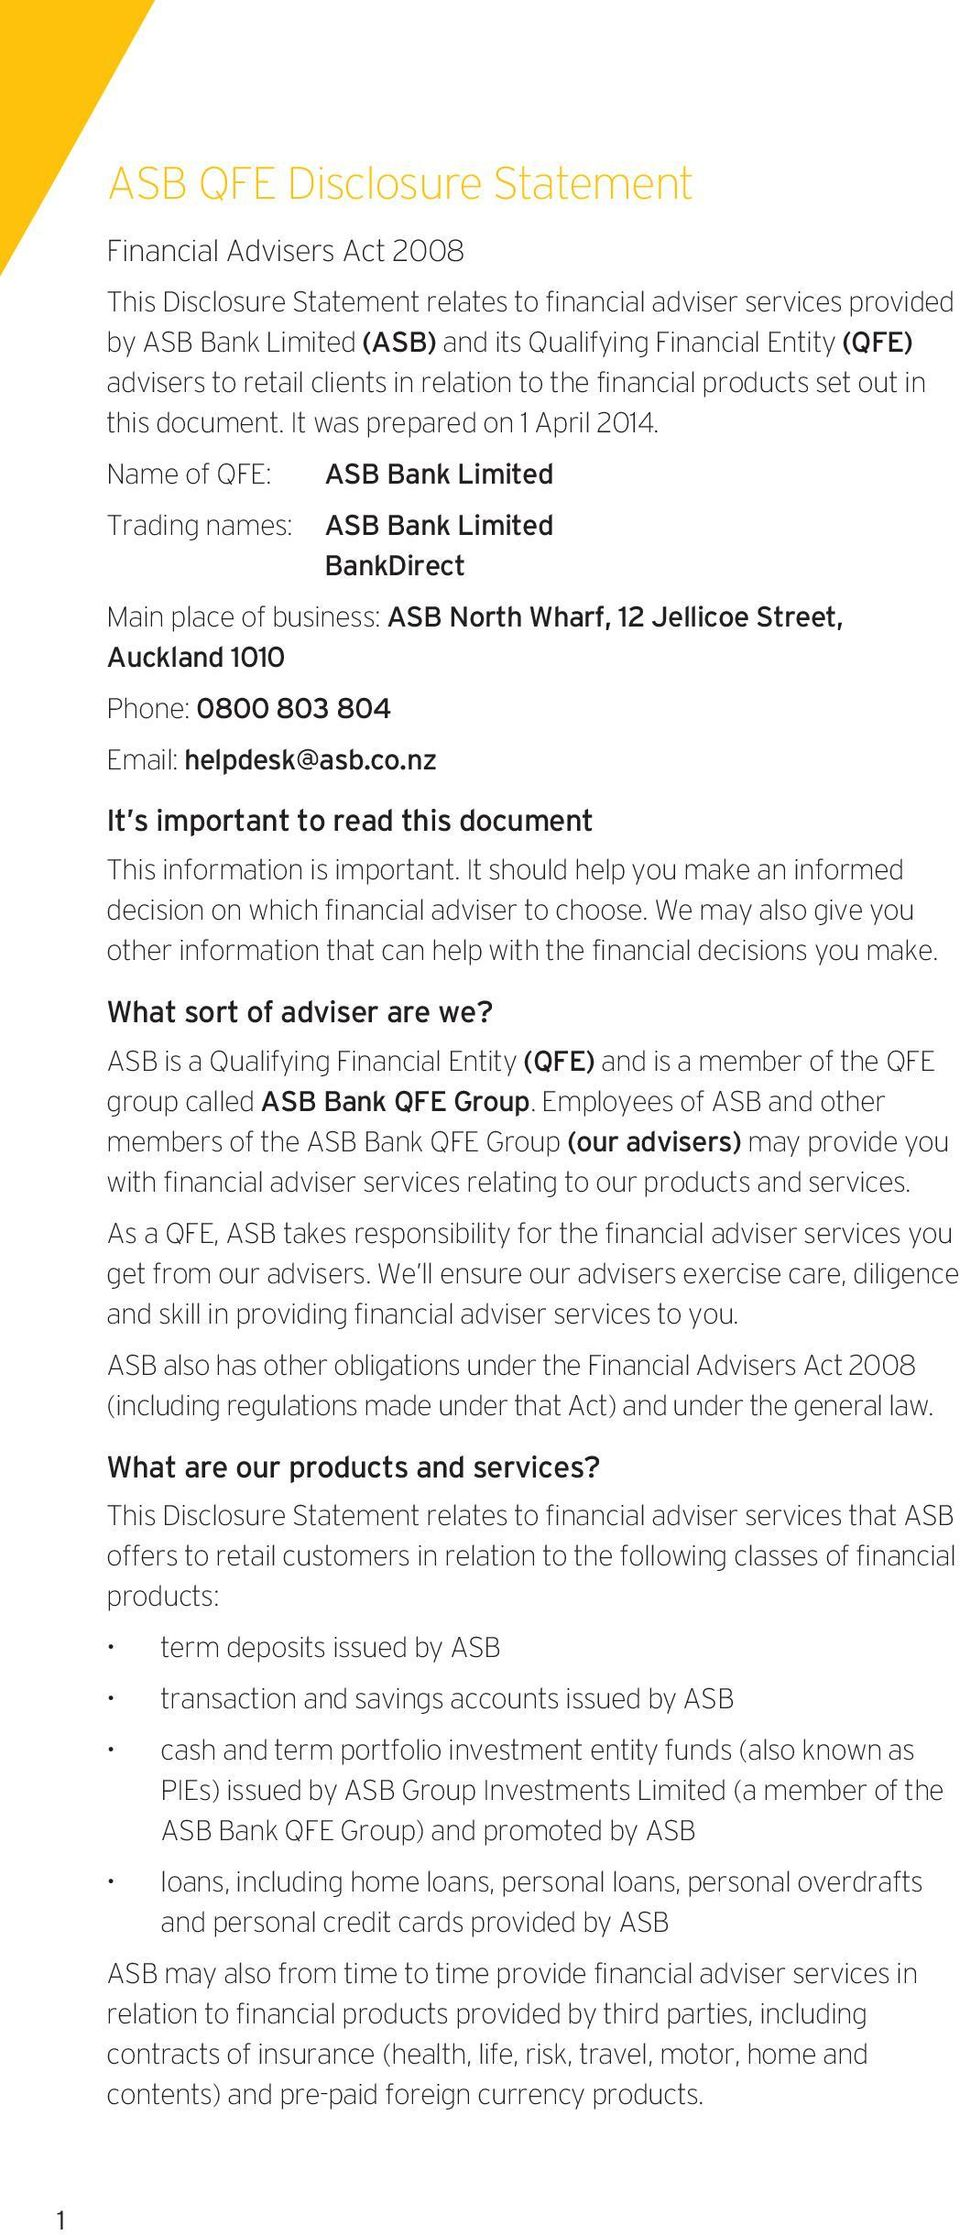 Name of QFE: ASB Bank Limited Trading names: ASB Bank Limited BankDirect Main place of business: ASB North Wharf, 12 Jellicoe Street, Auckland 1010 Phone: 0800 803 804 Email: helpdesk@asb.co.nz It s important to read this document This information is important.